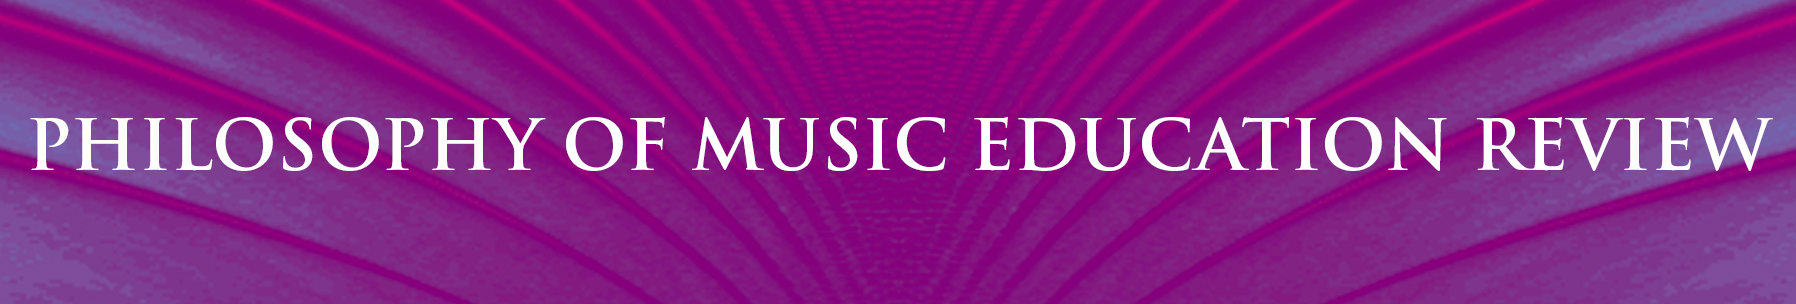 Cover of the Philosophy of Music Education Review